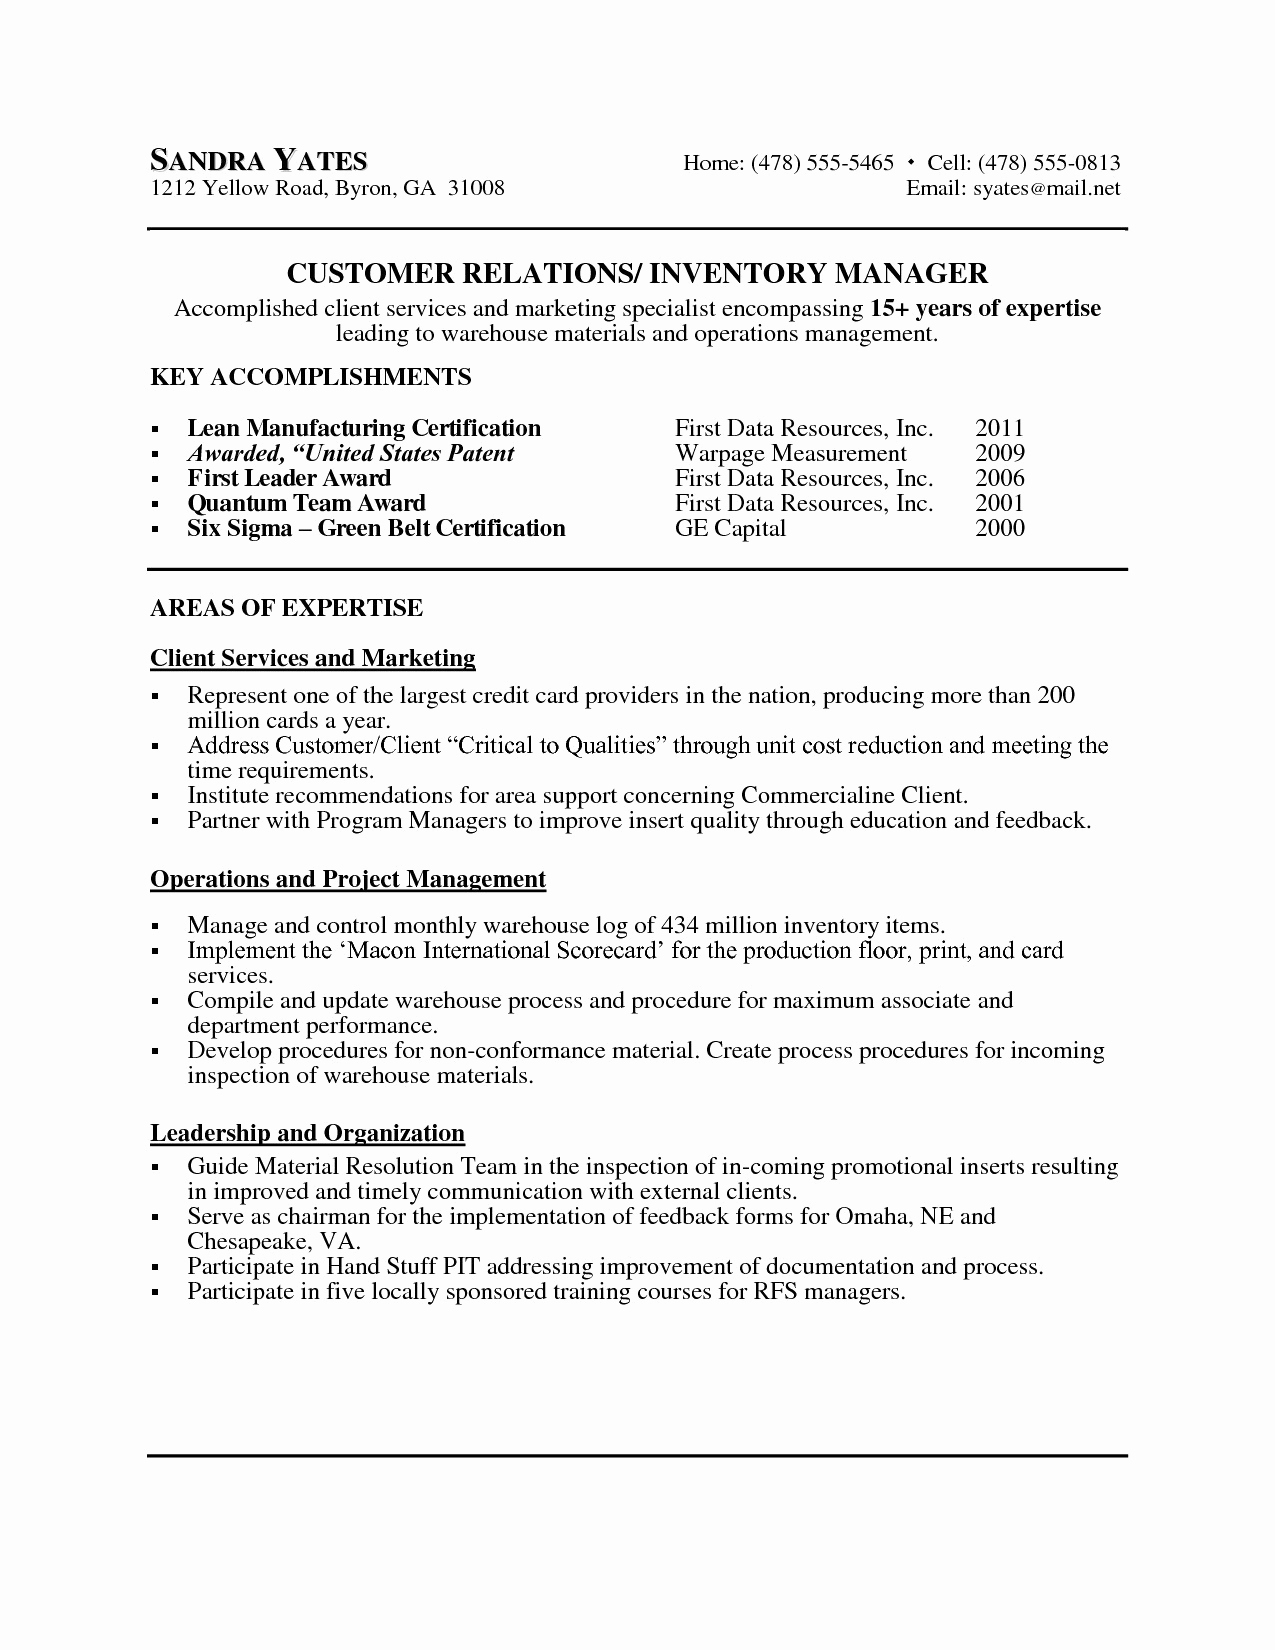 Internal Resume Sample - Internal Promotion Resume Template Beautiful American Resume Sample